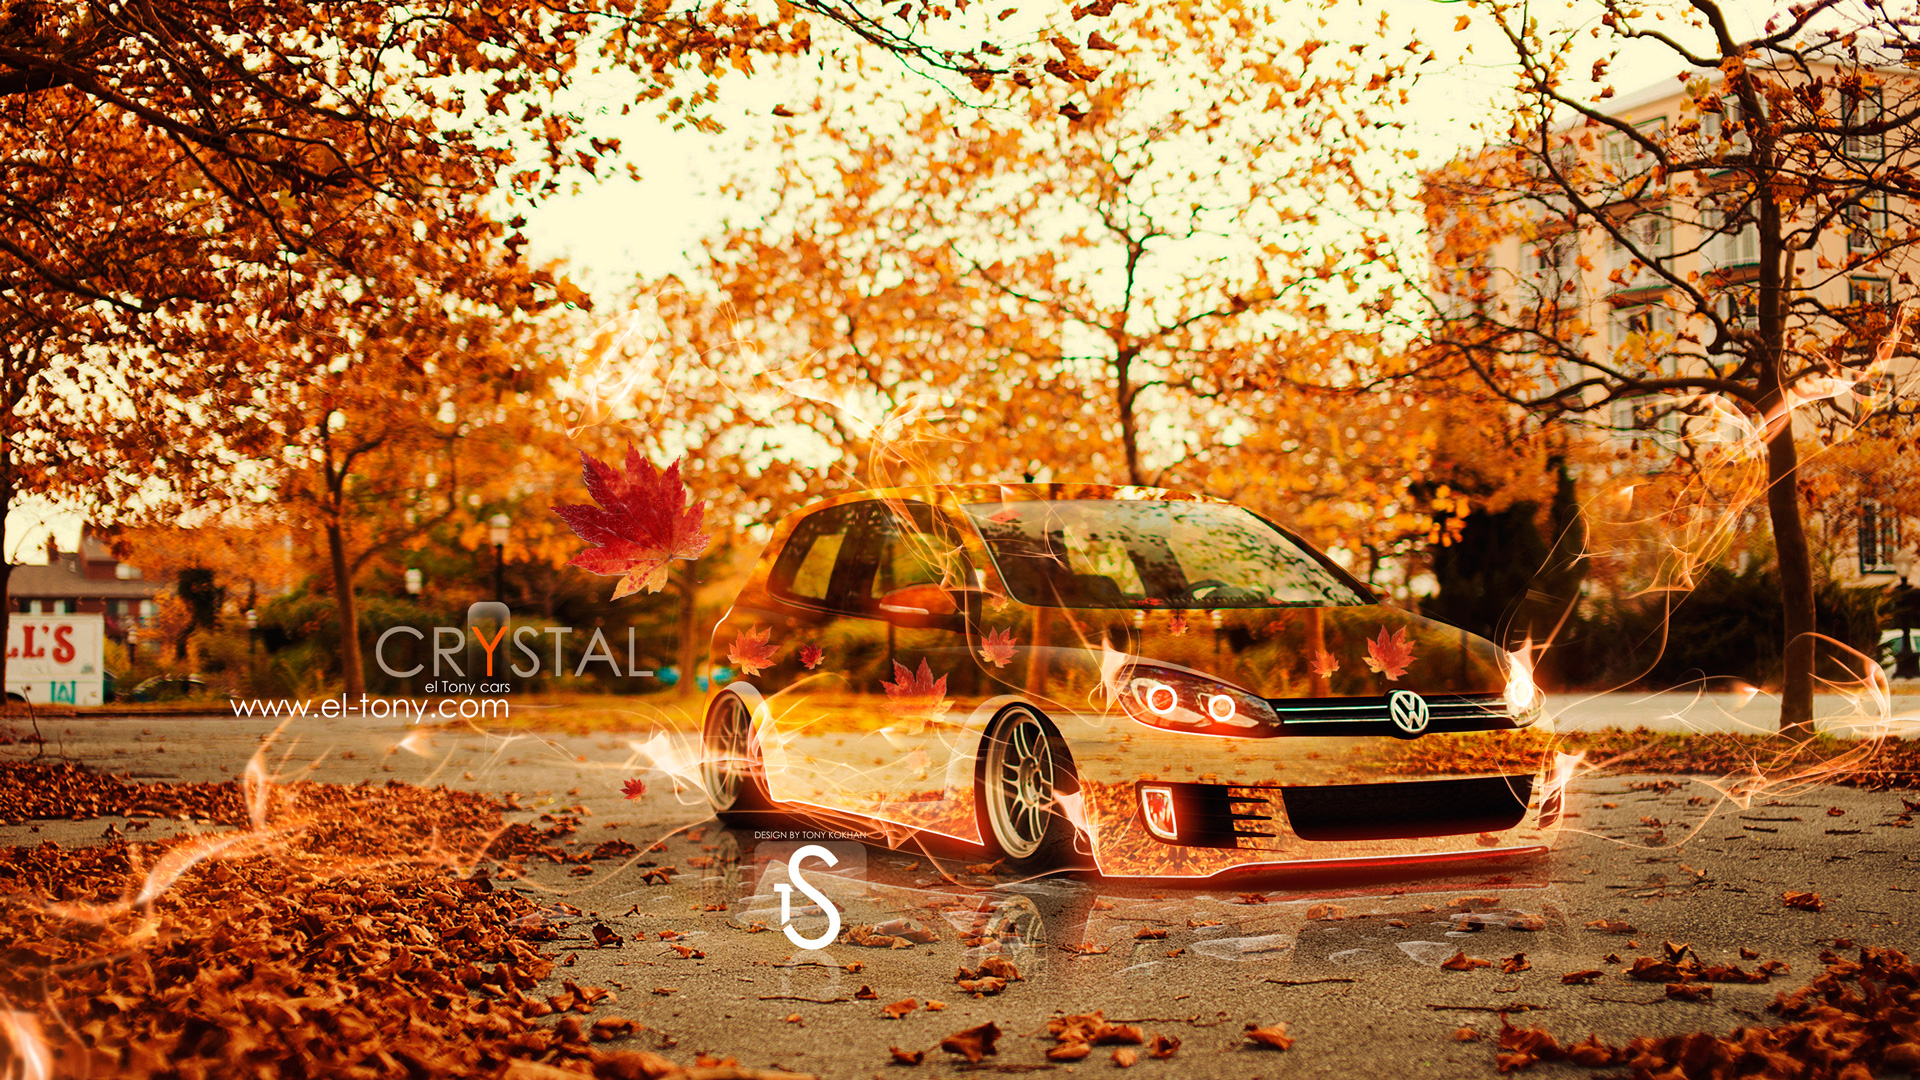 Volkswagen Golf Autumn Crystal Car 2013 El Tony